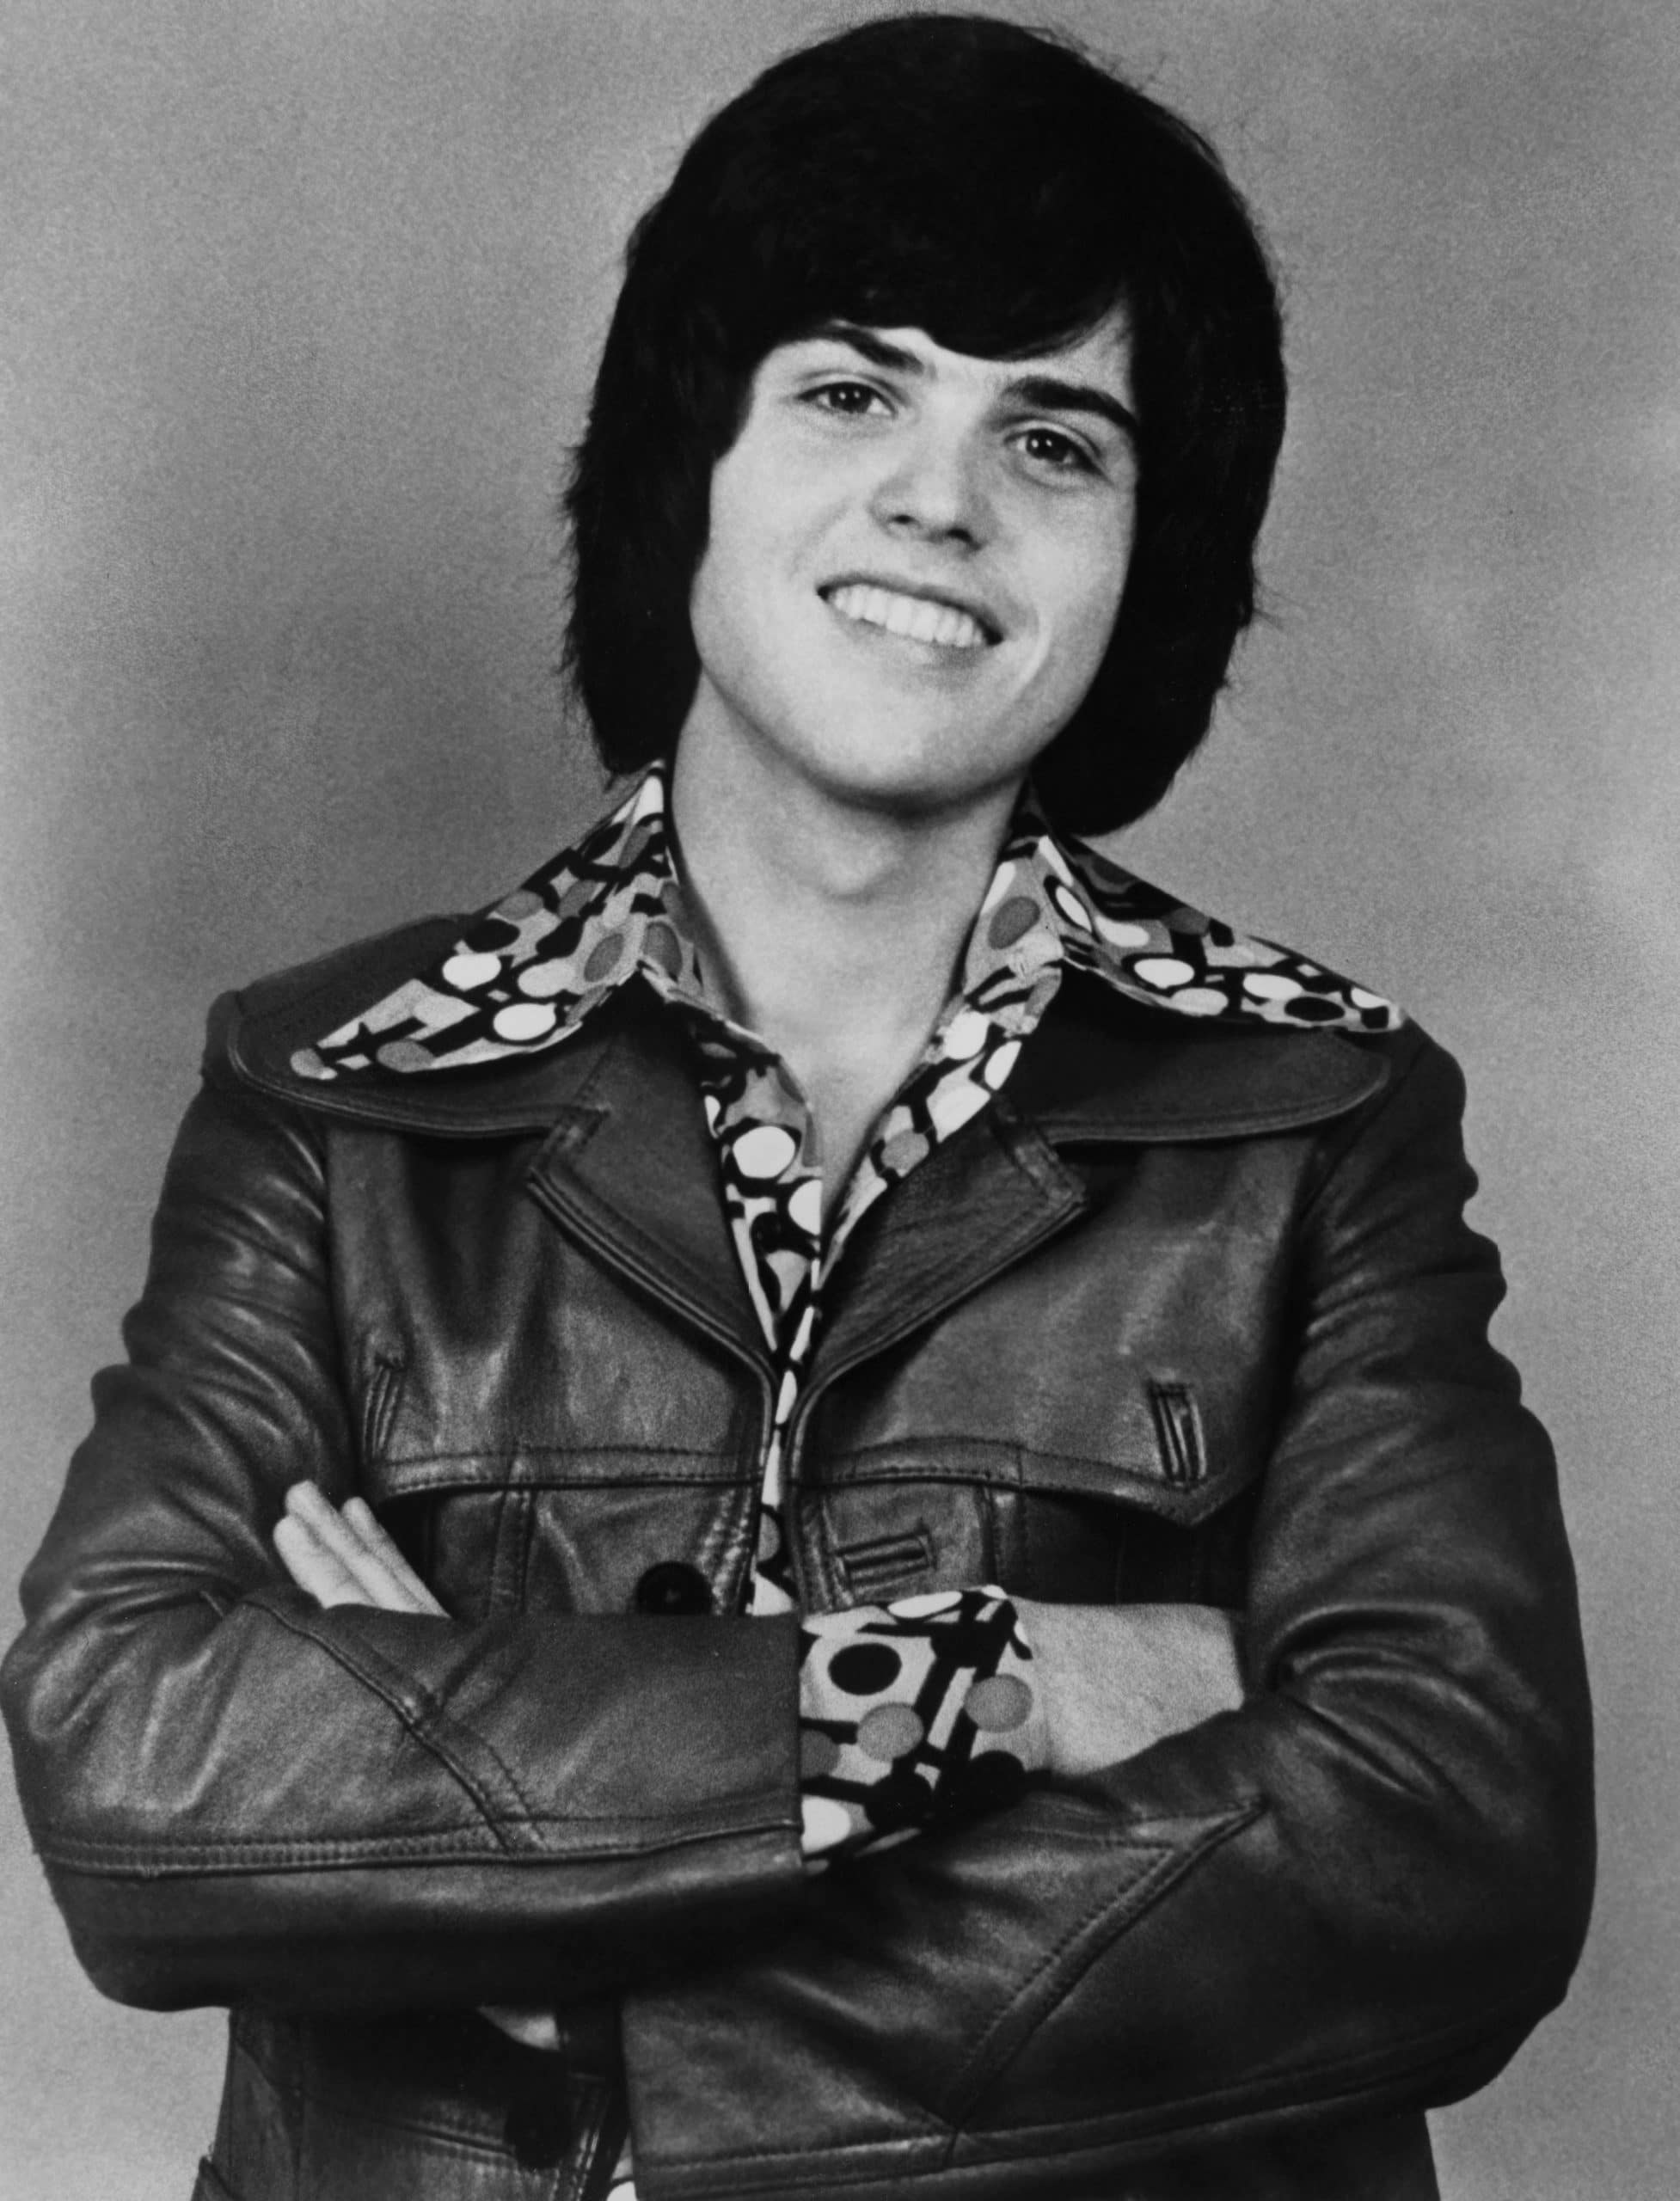 Donny Osmond Says His Days Of Success As A Teen Were Very Lonely